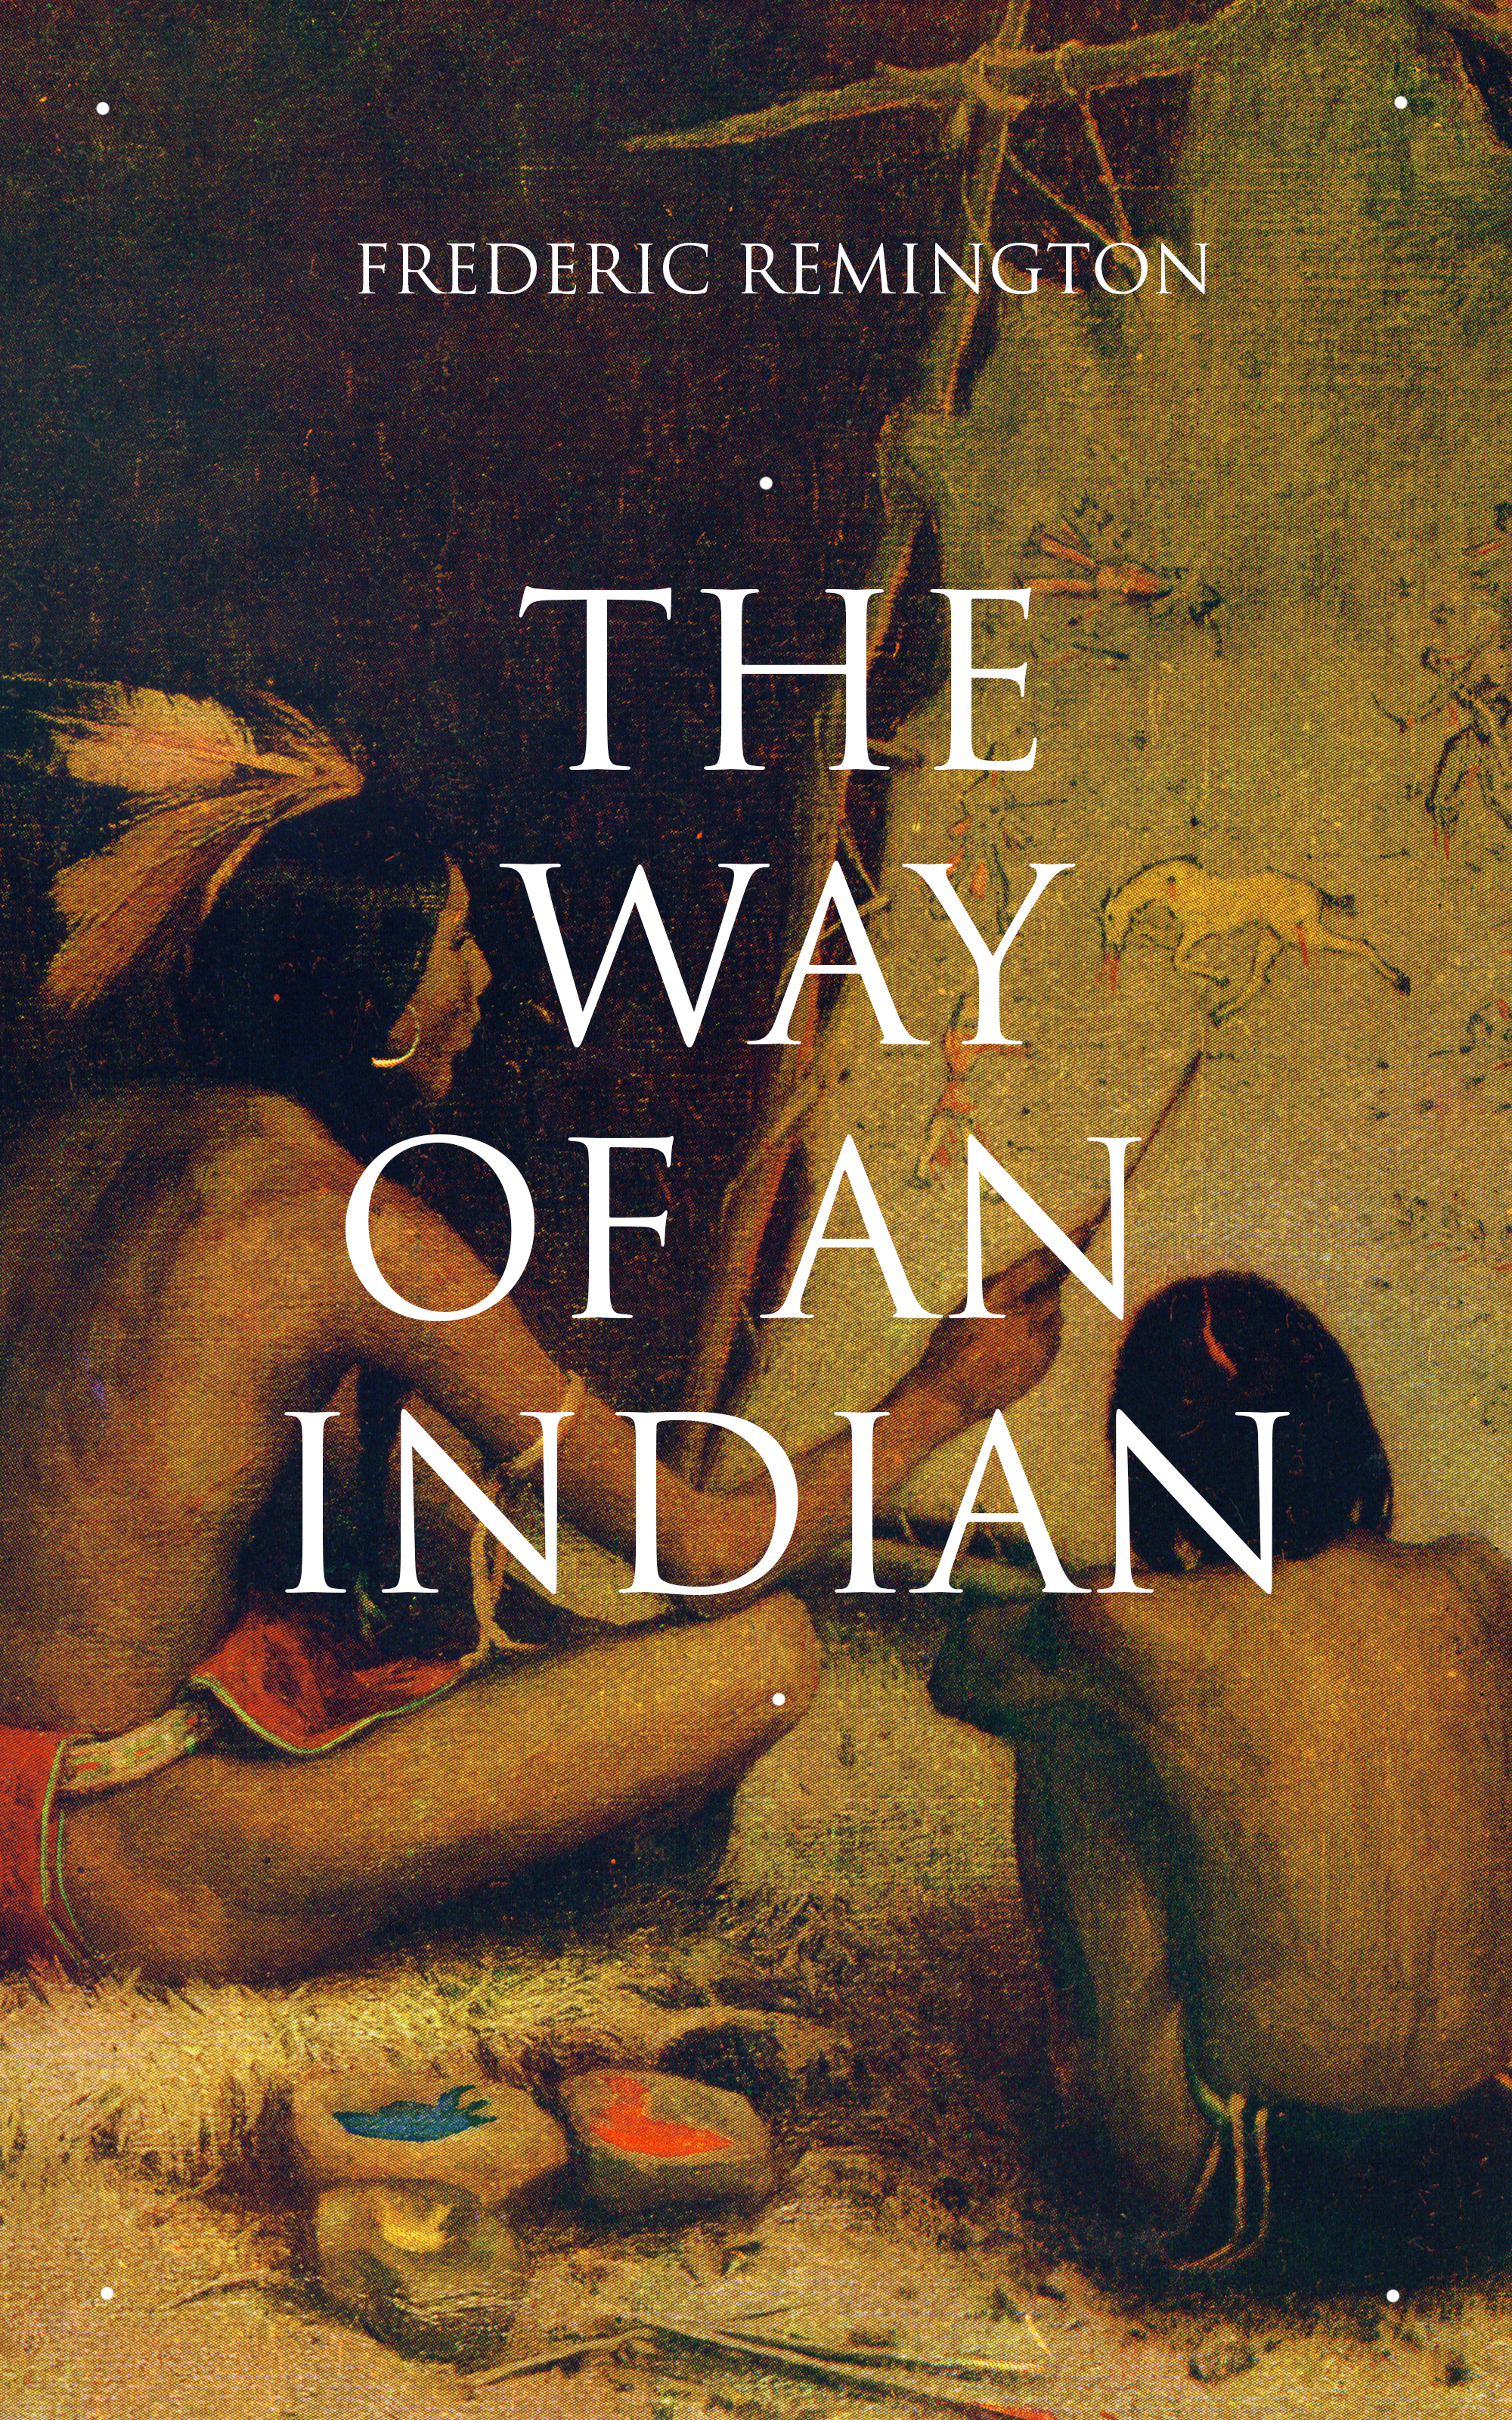 Frederic Remington THE WAY OF AN INDIAN the thoughts of an unknown indian